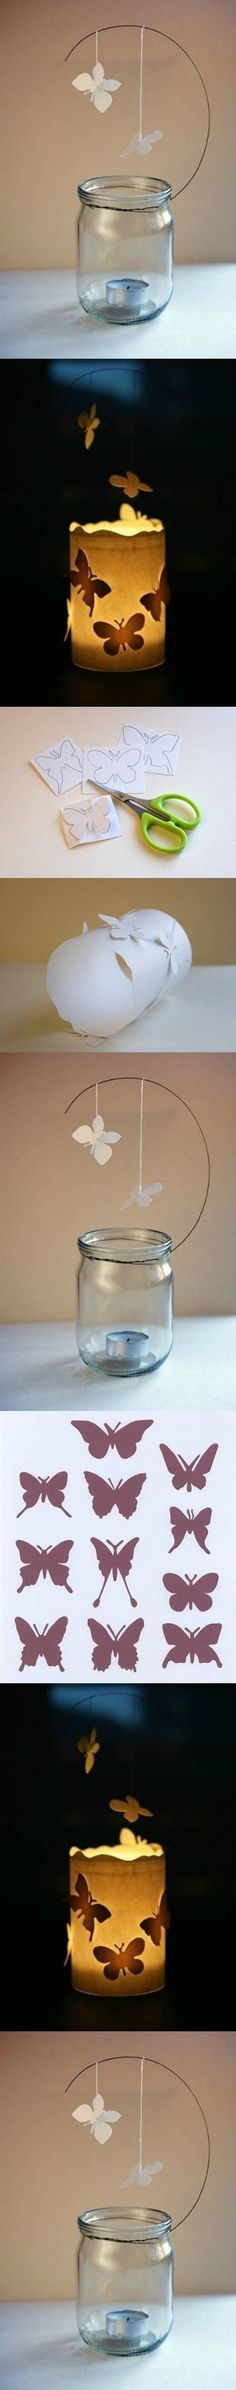 25-Beautiful-Creative-Ways-of-Repurposing-Mason-Jars-homesthetics-15.jpg 467×4,731 pixeles